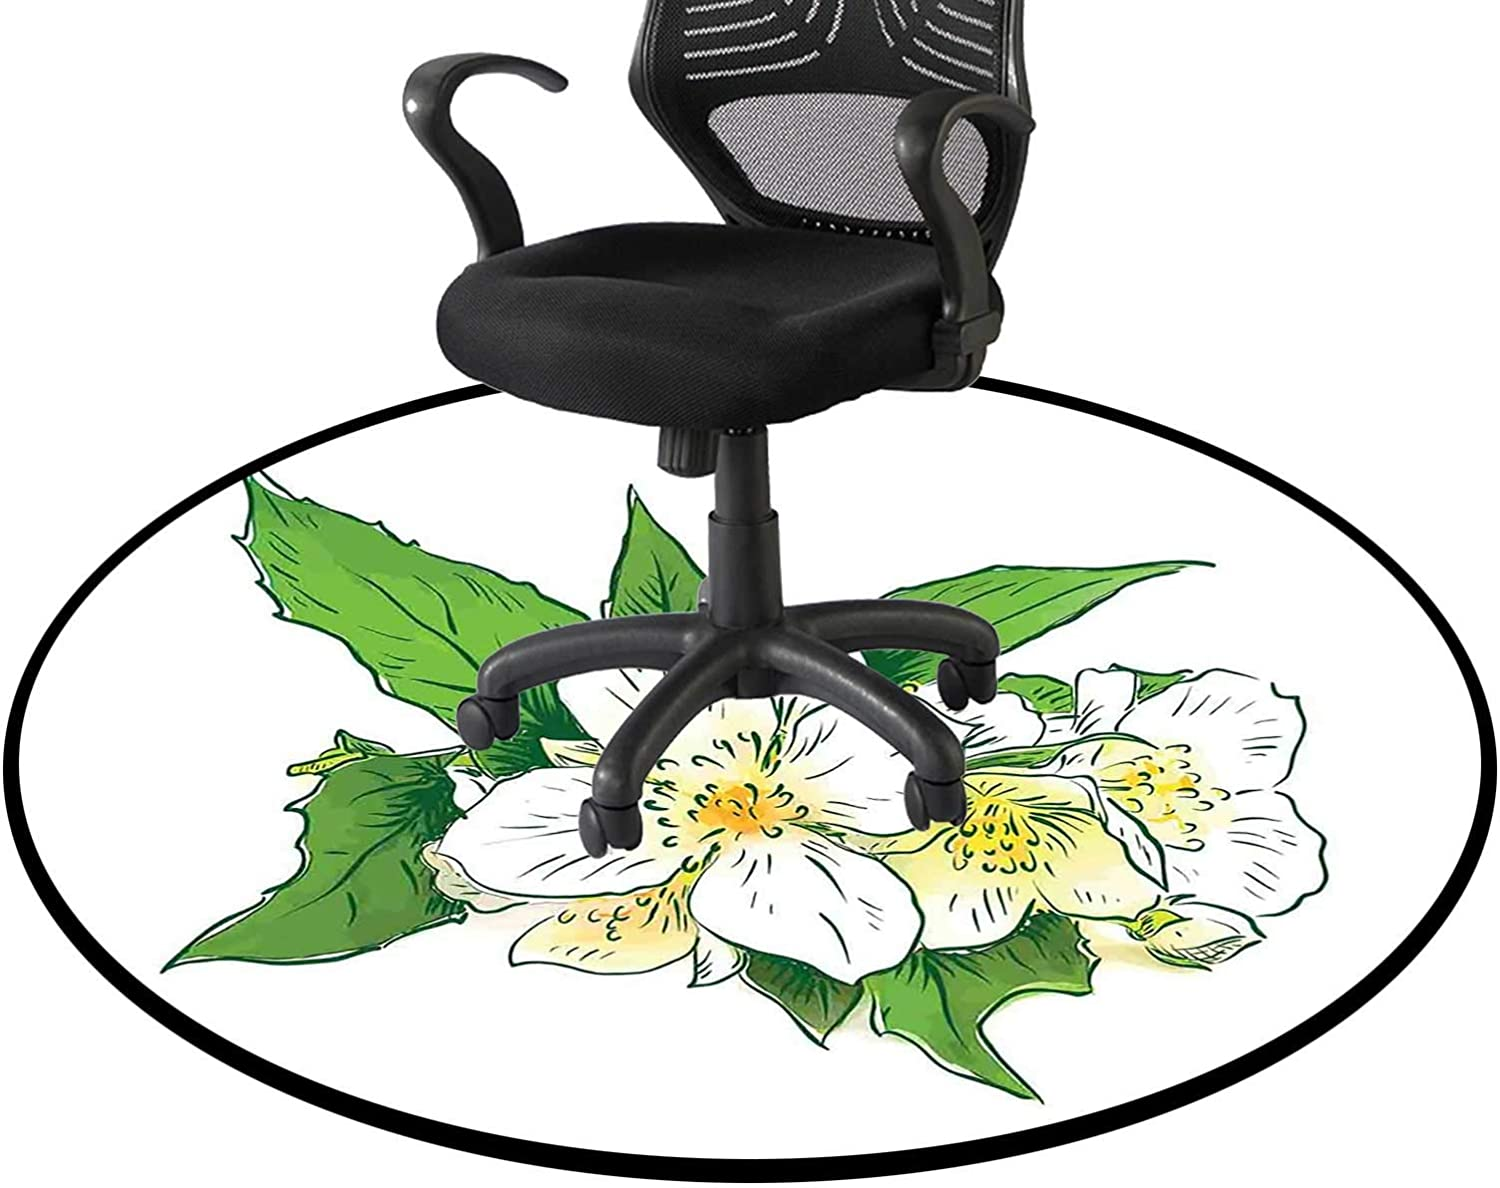 Freshness 2021 model and Purity Office Swivel Chair Max 60% OFF Round fo Mat Floor Mats